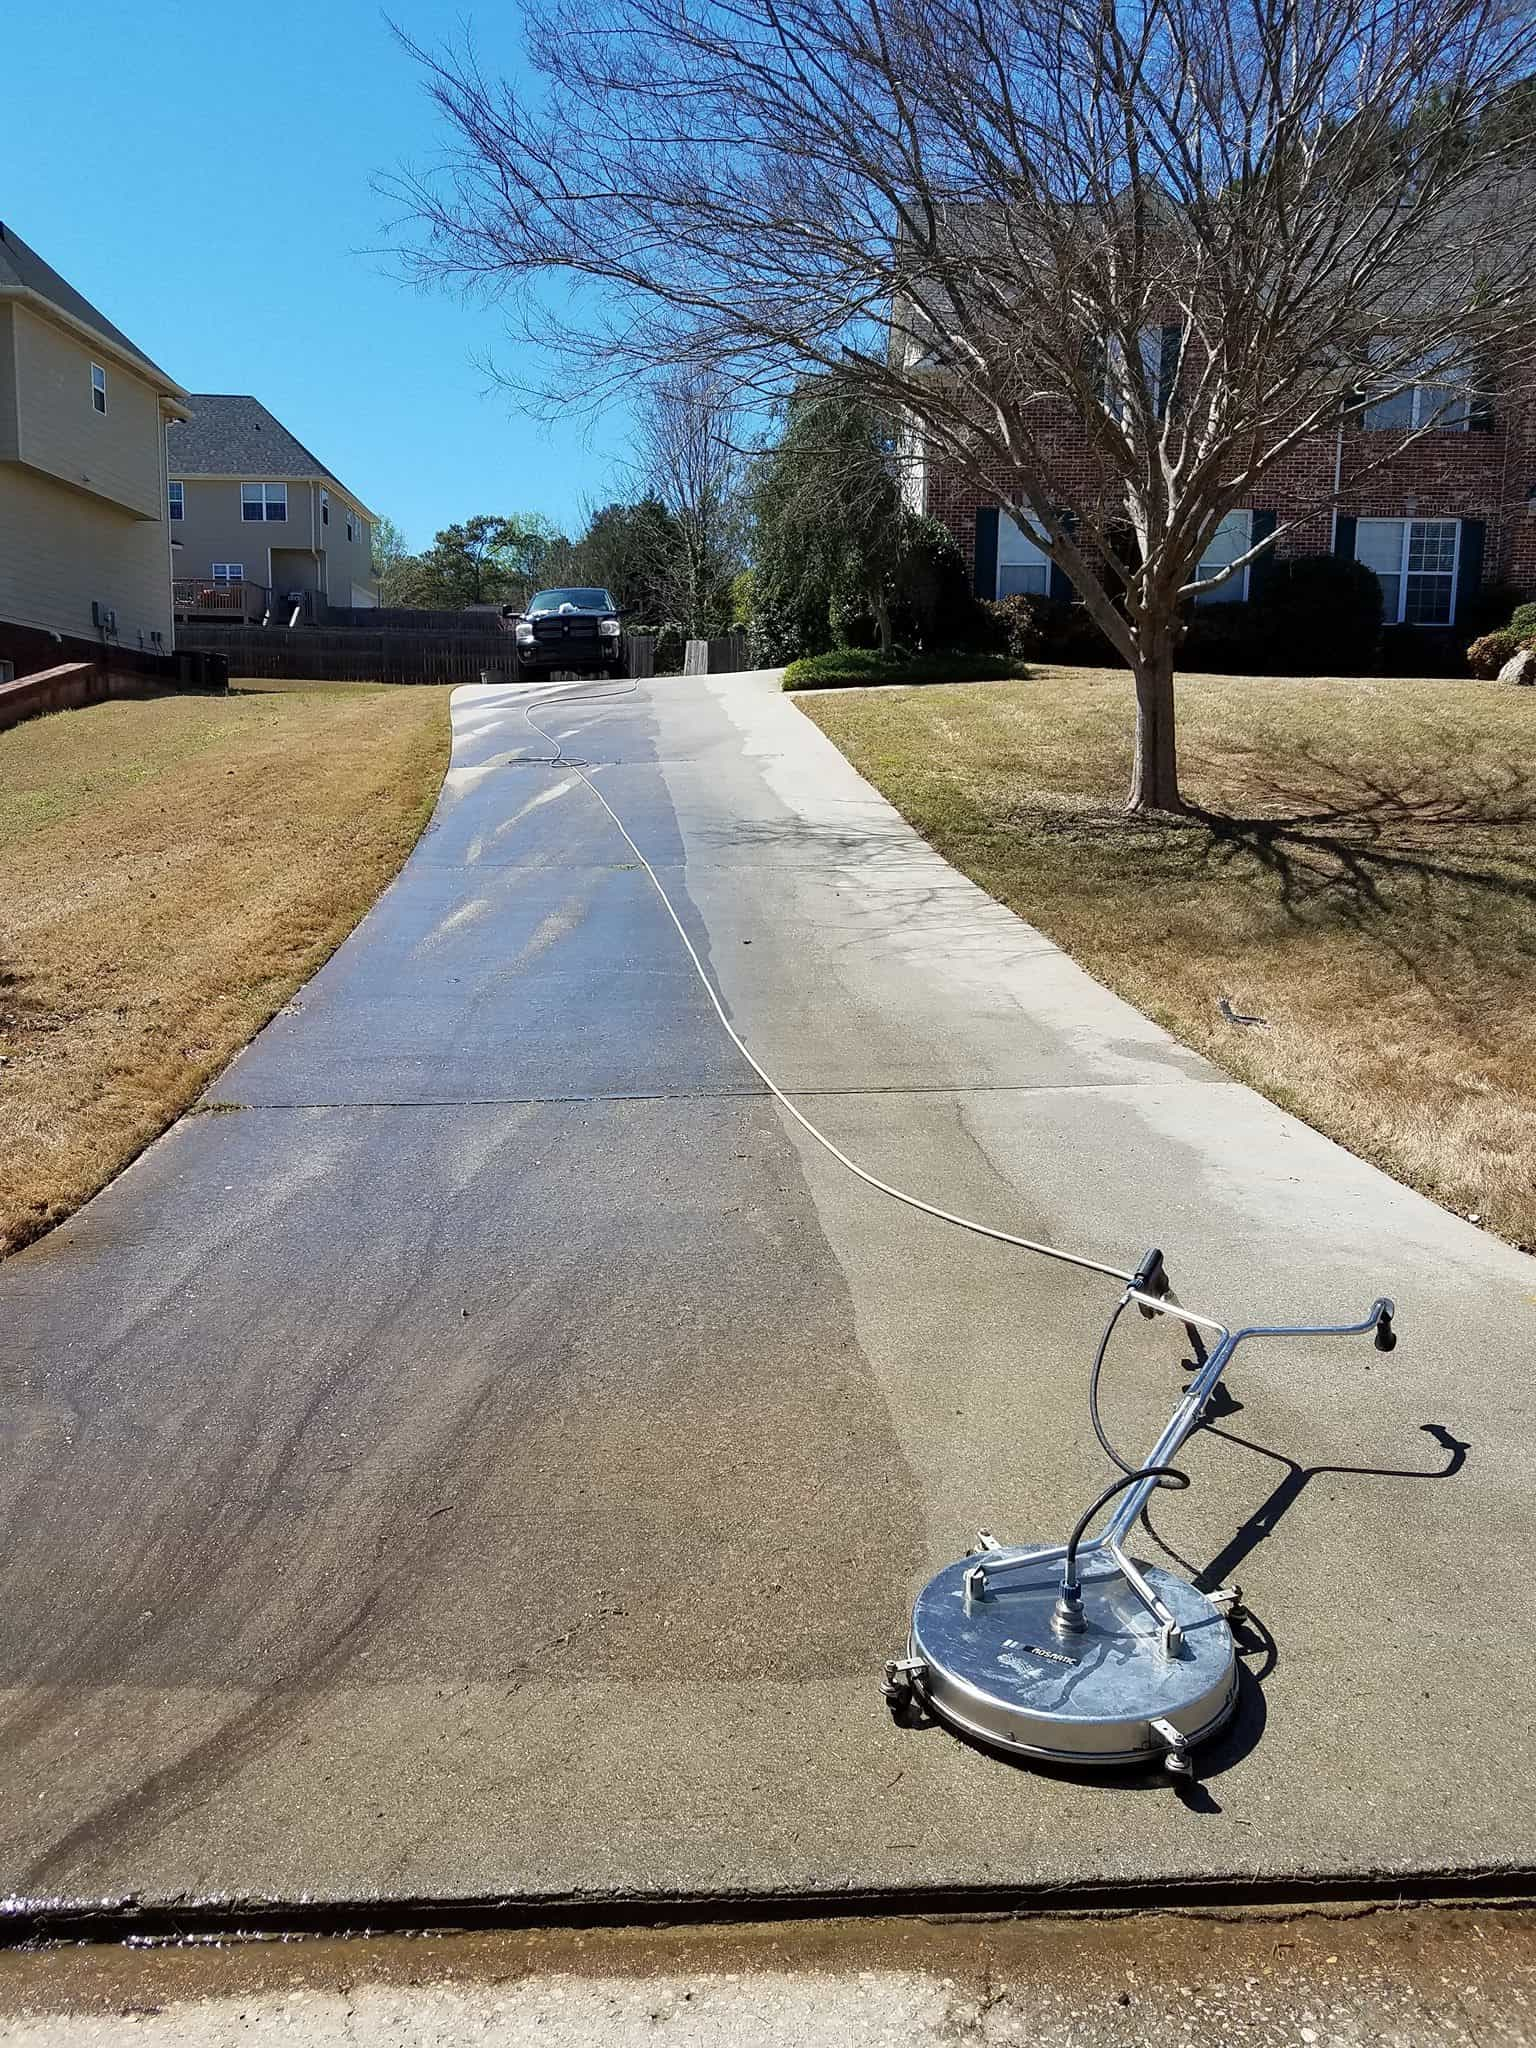 Why Pressure Wash Your Driveway?